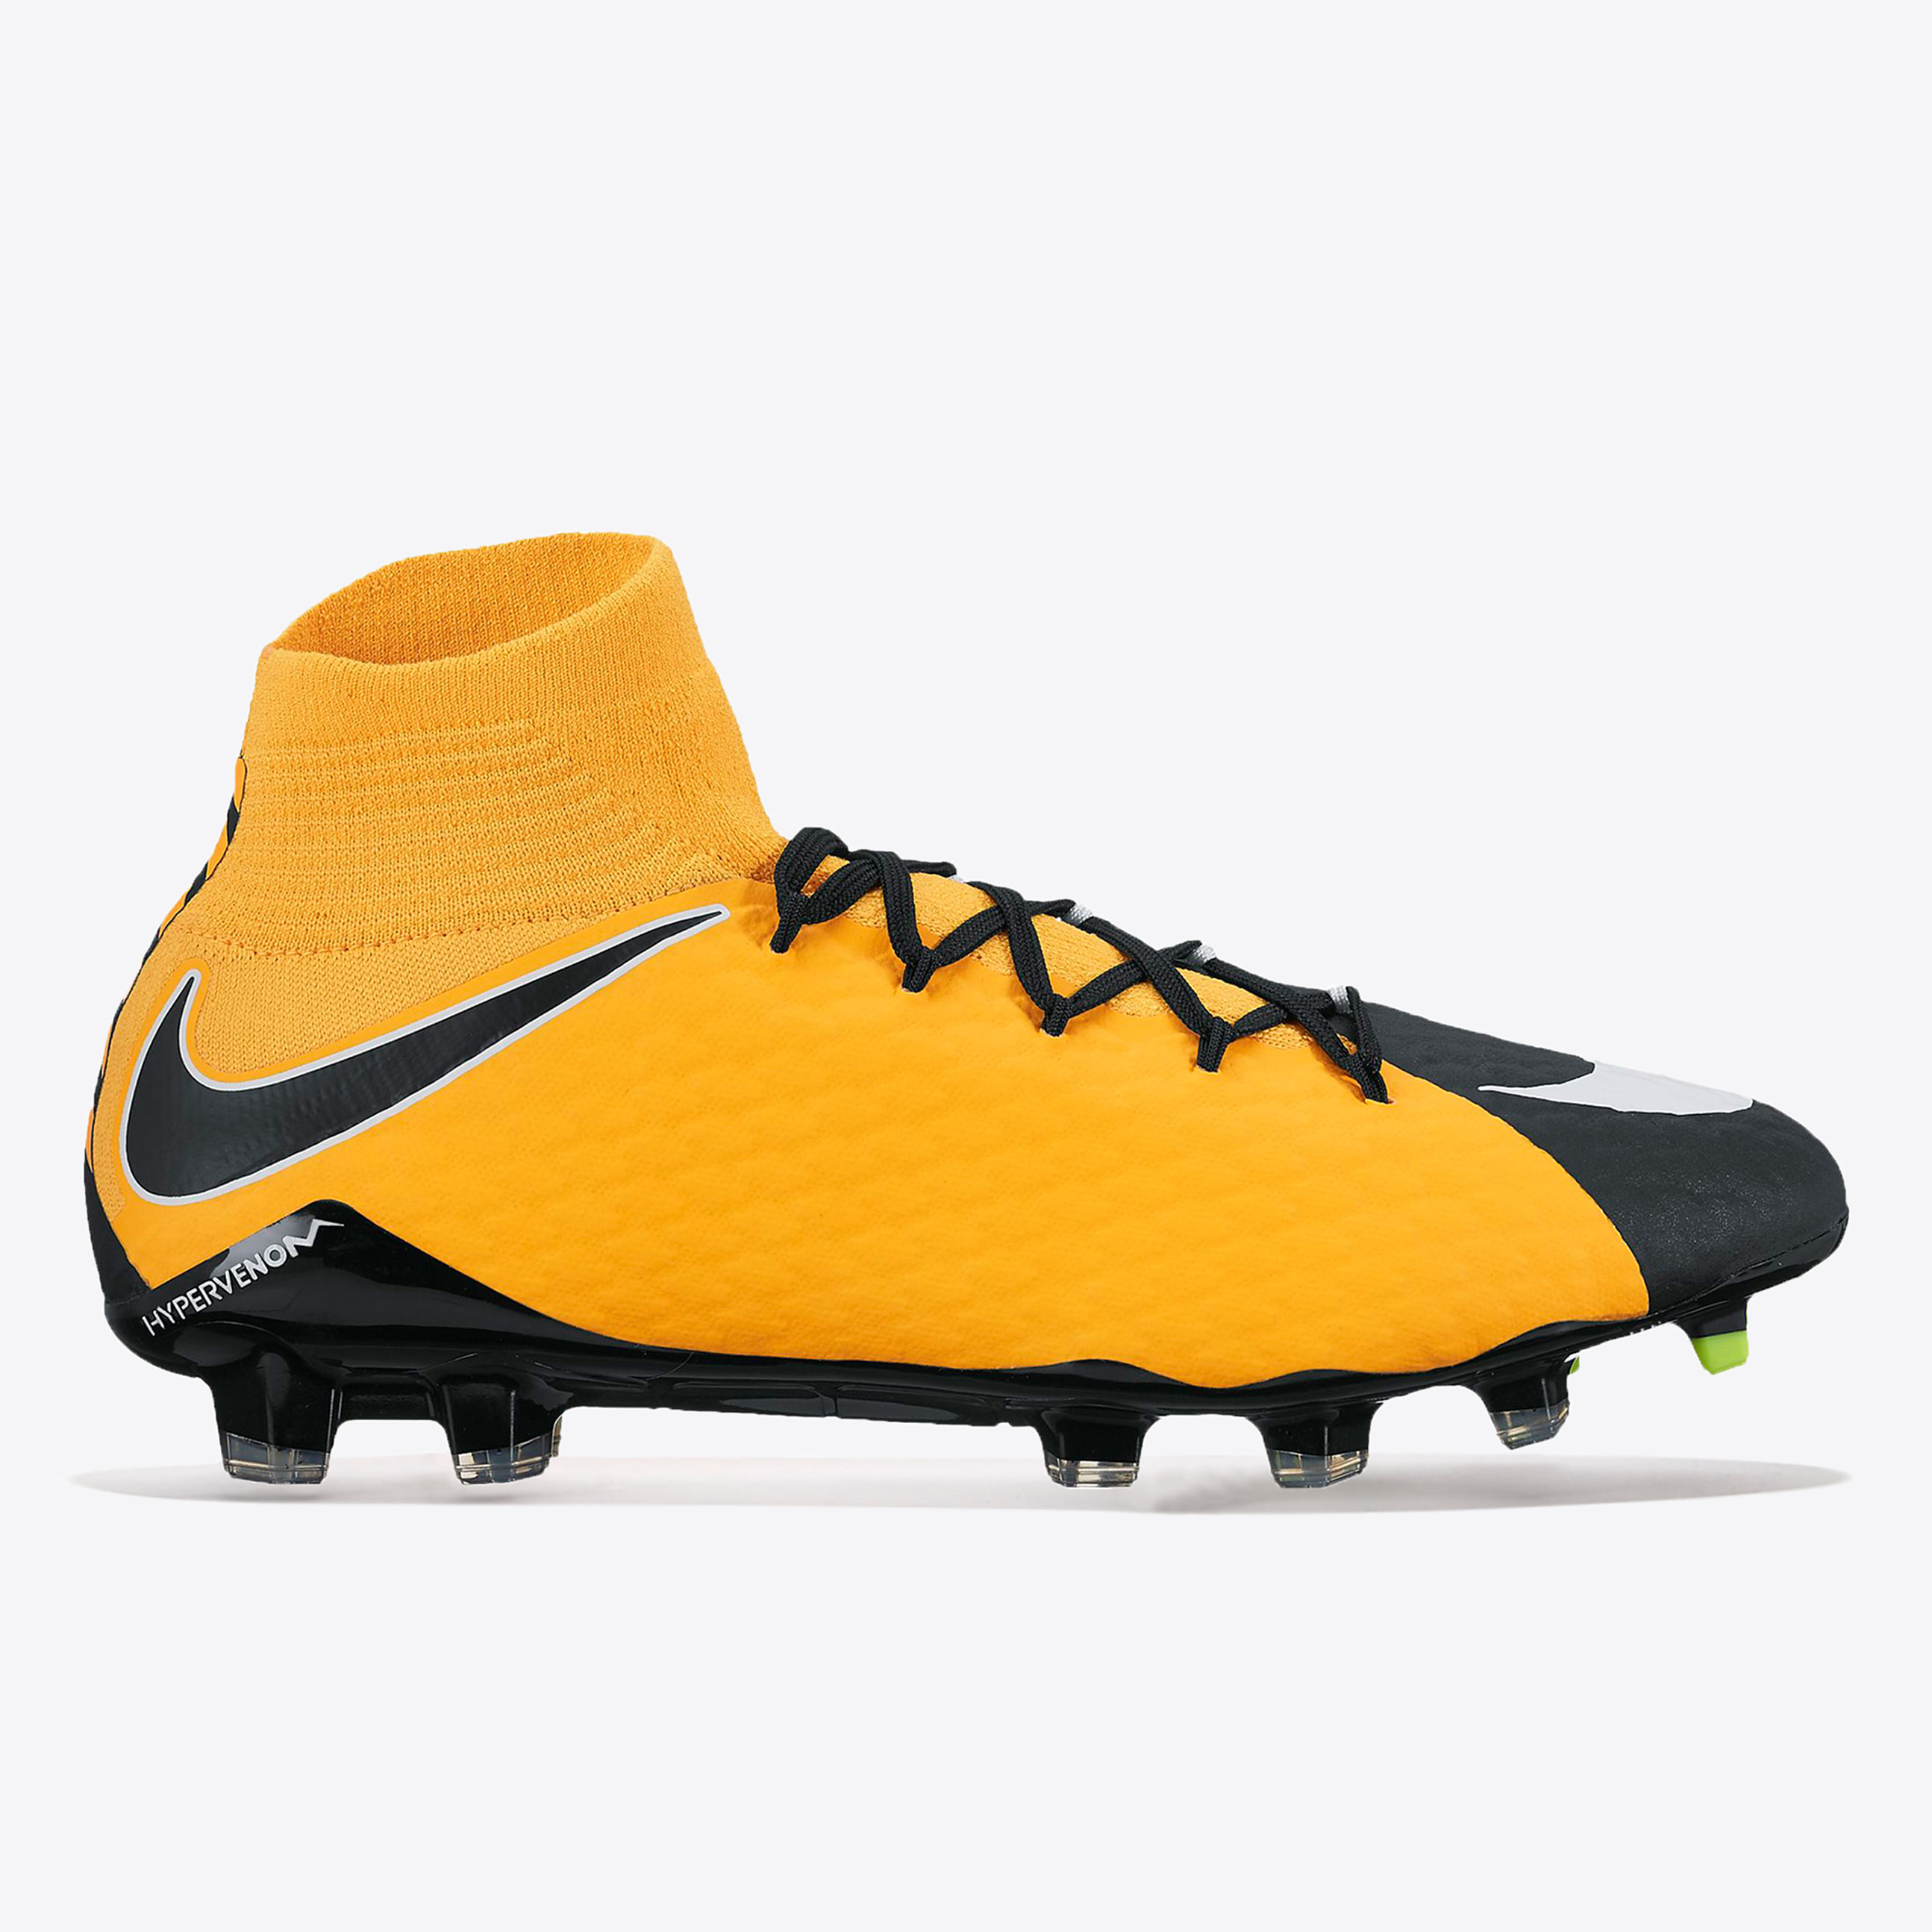 Nike Hypervenom Phatal III Dynamic Fit Firm Ground Football Boots - La